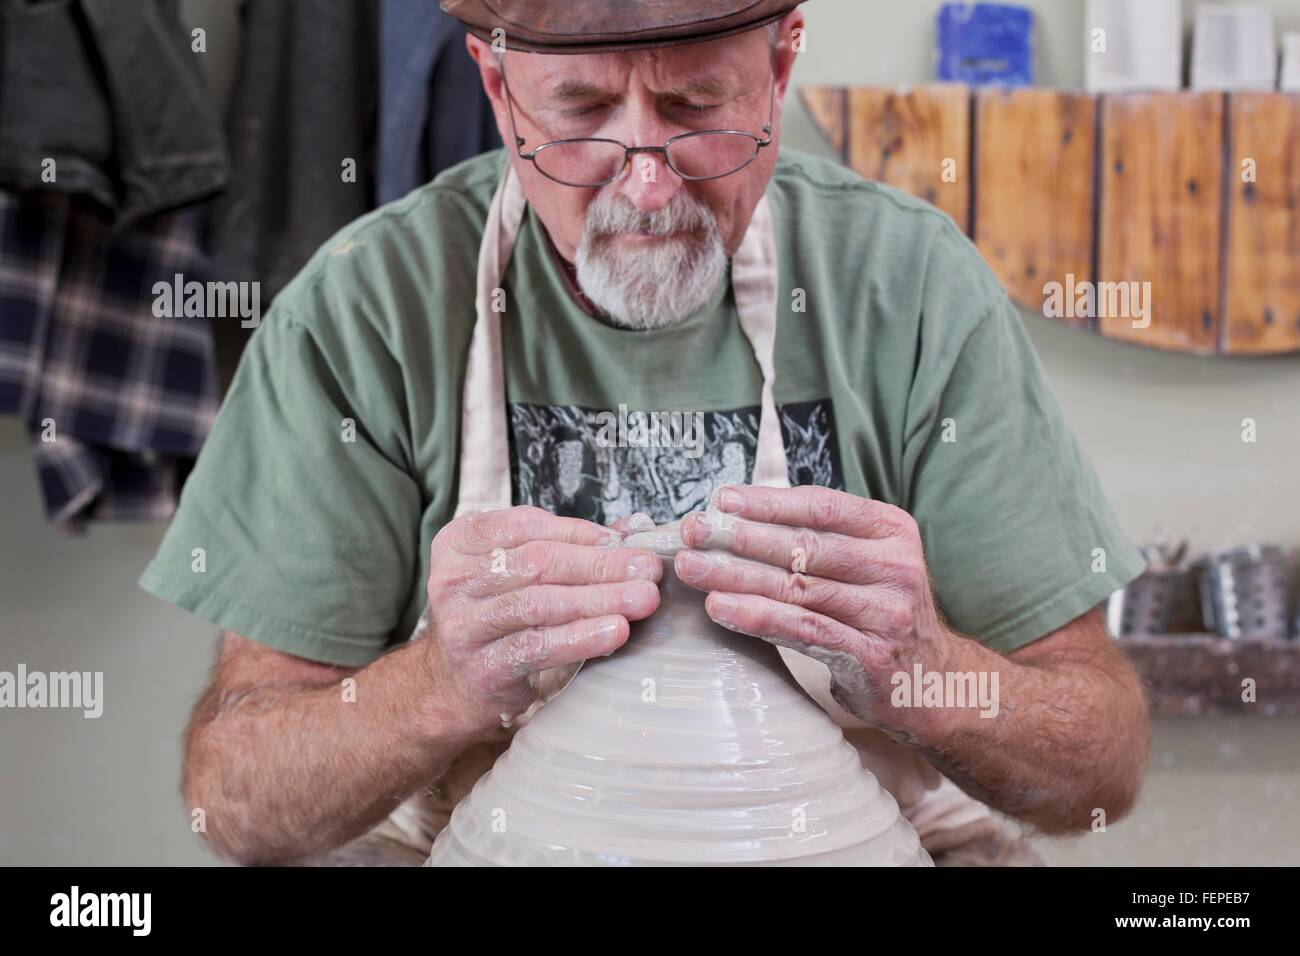 Potter wearing flat cap finishing shaping clay vase, looking down - Stock Image